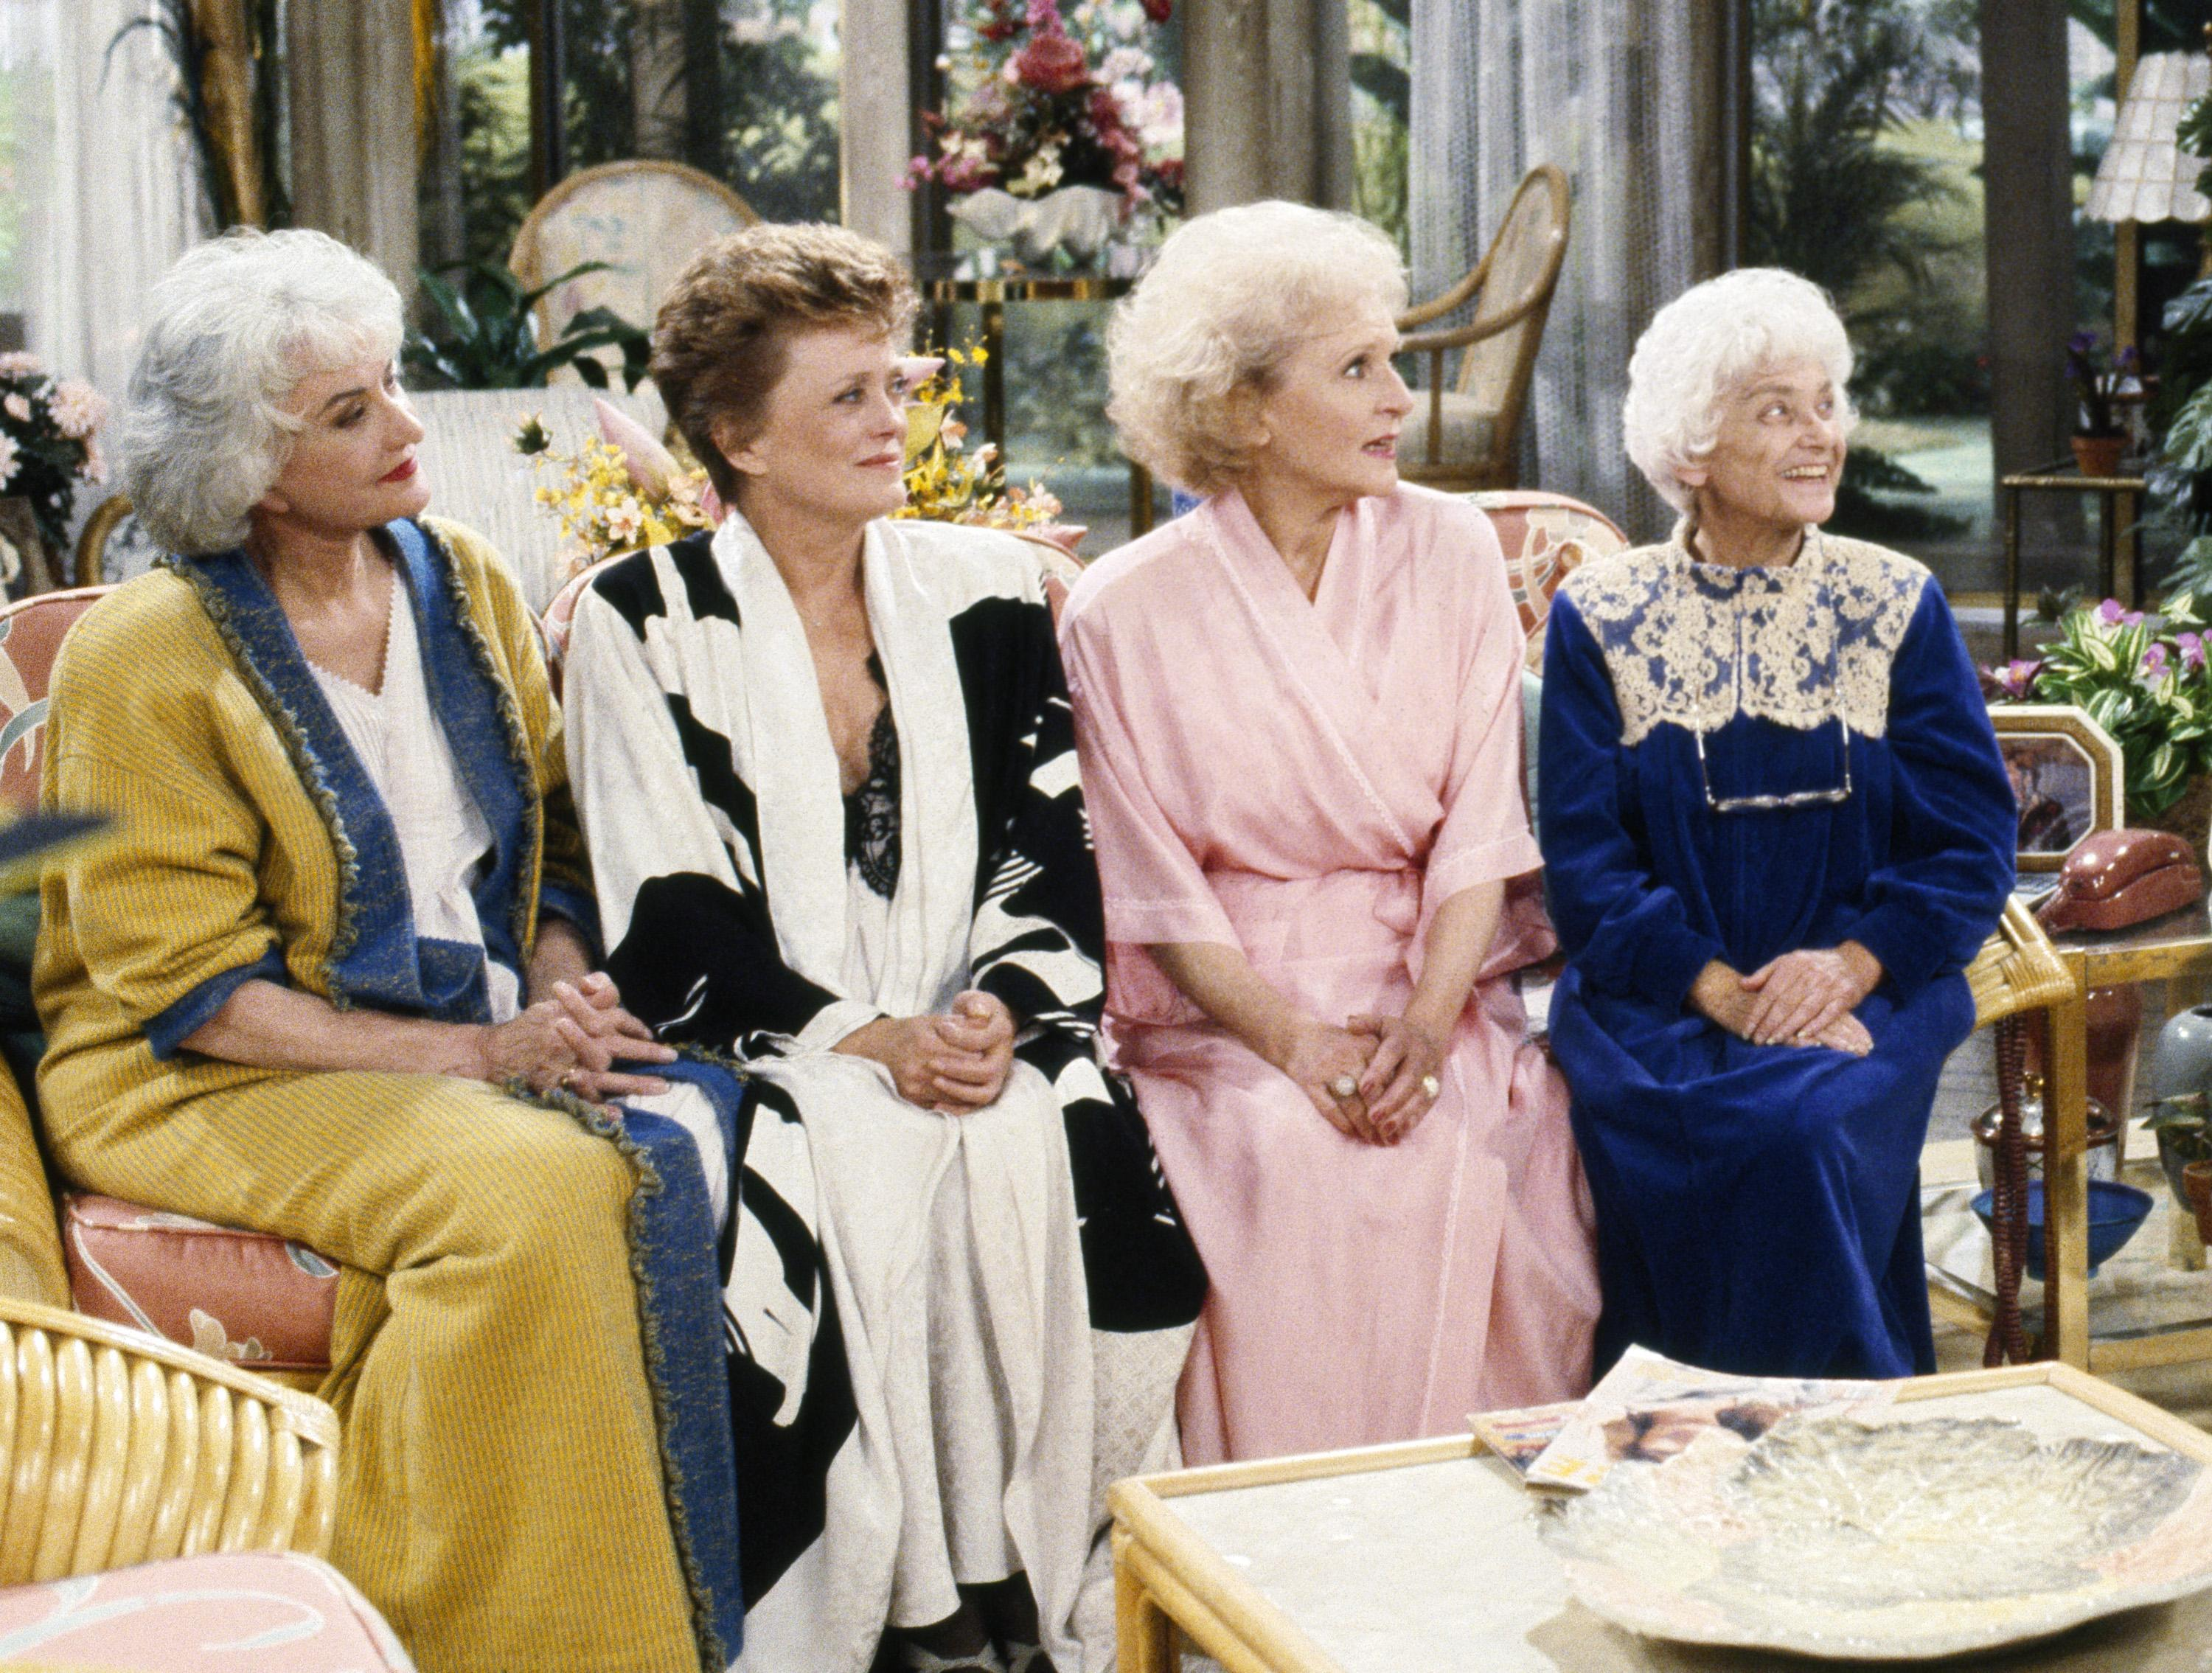 The Golden Girls cafe is finally open, banana wallpapers and all